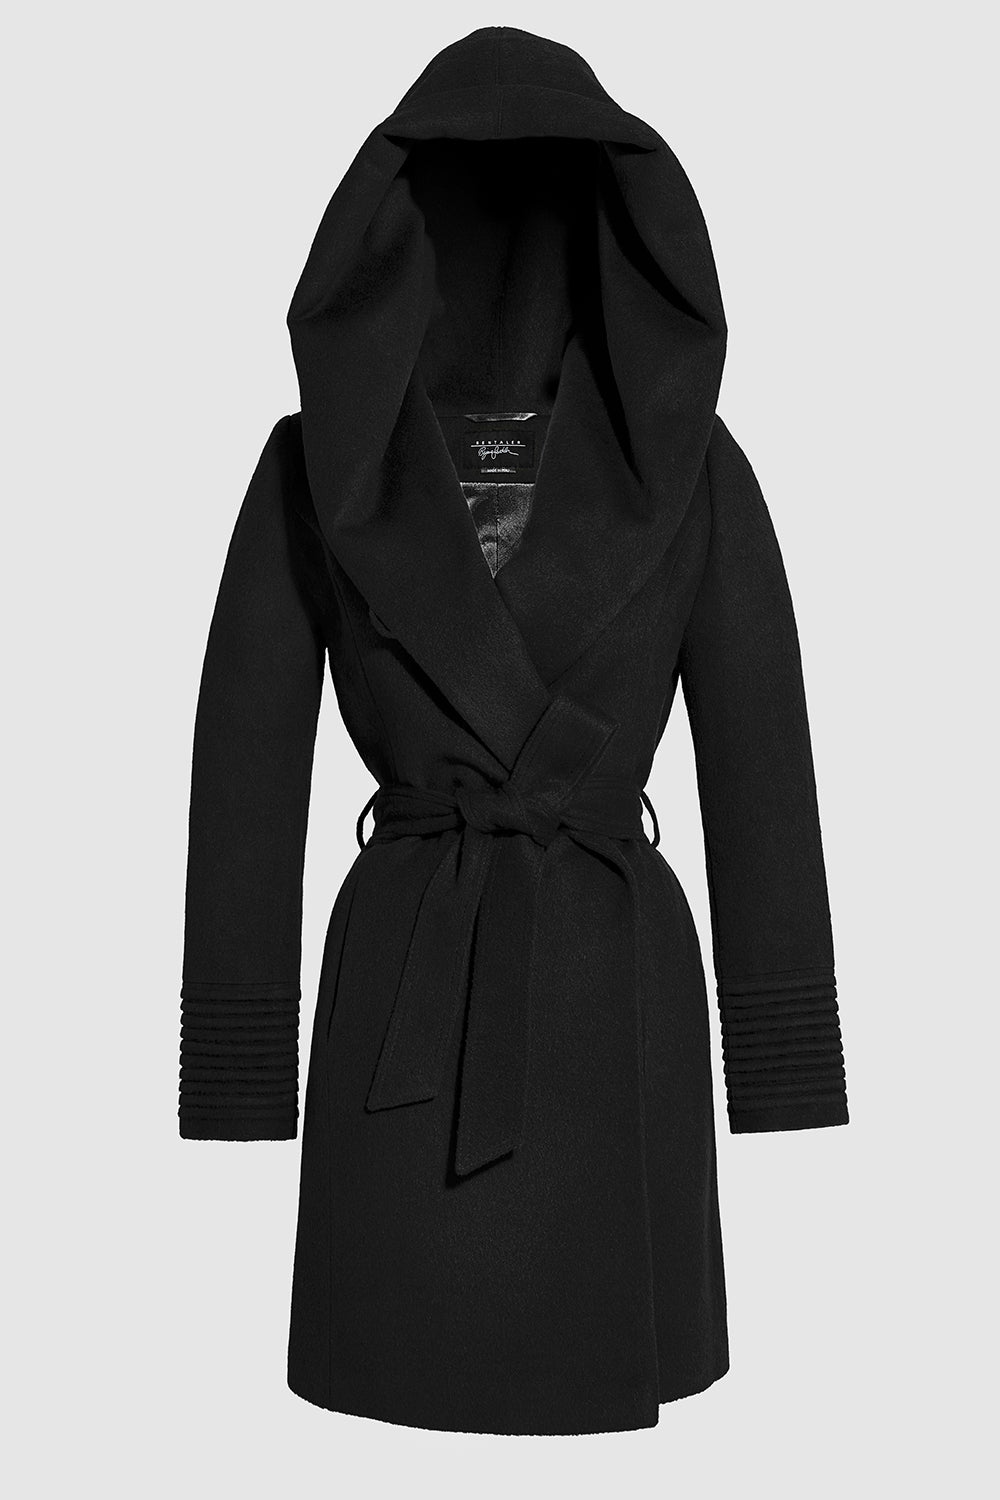 Sentaler Mid Length Hooded Wrap Coat featured in Baby Alpaca and available in Black. Seen off model.